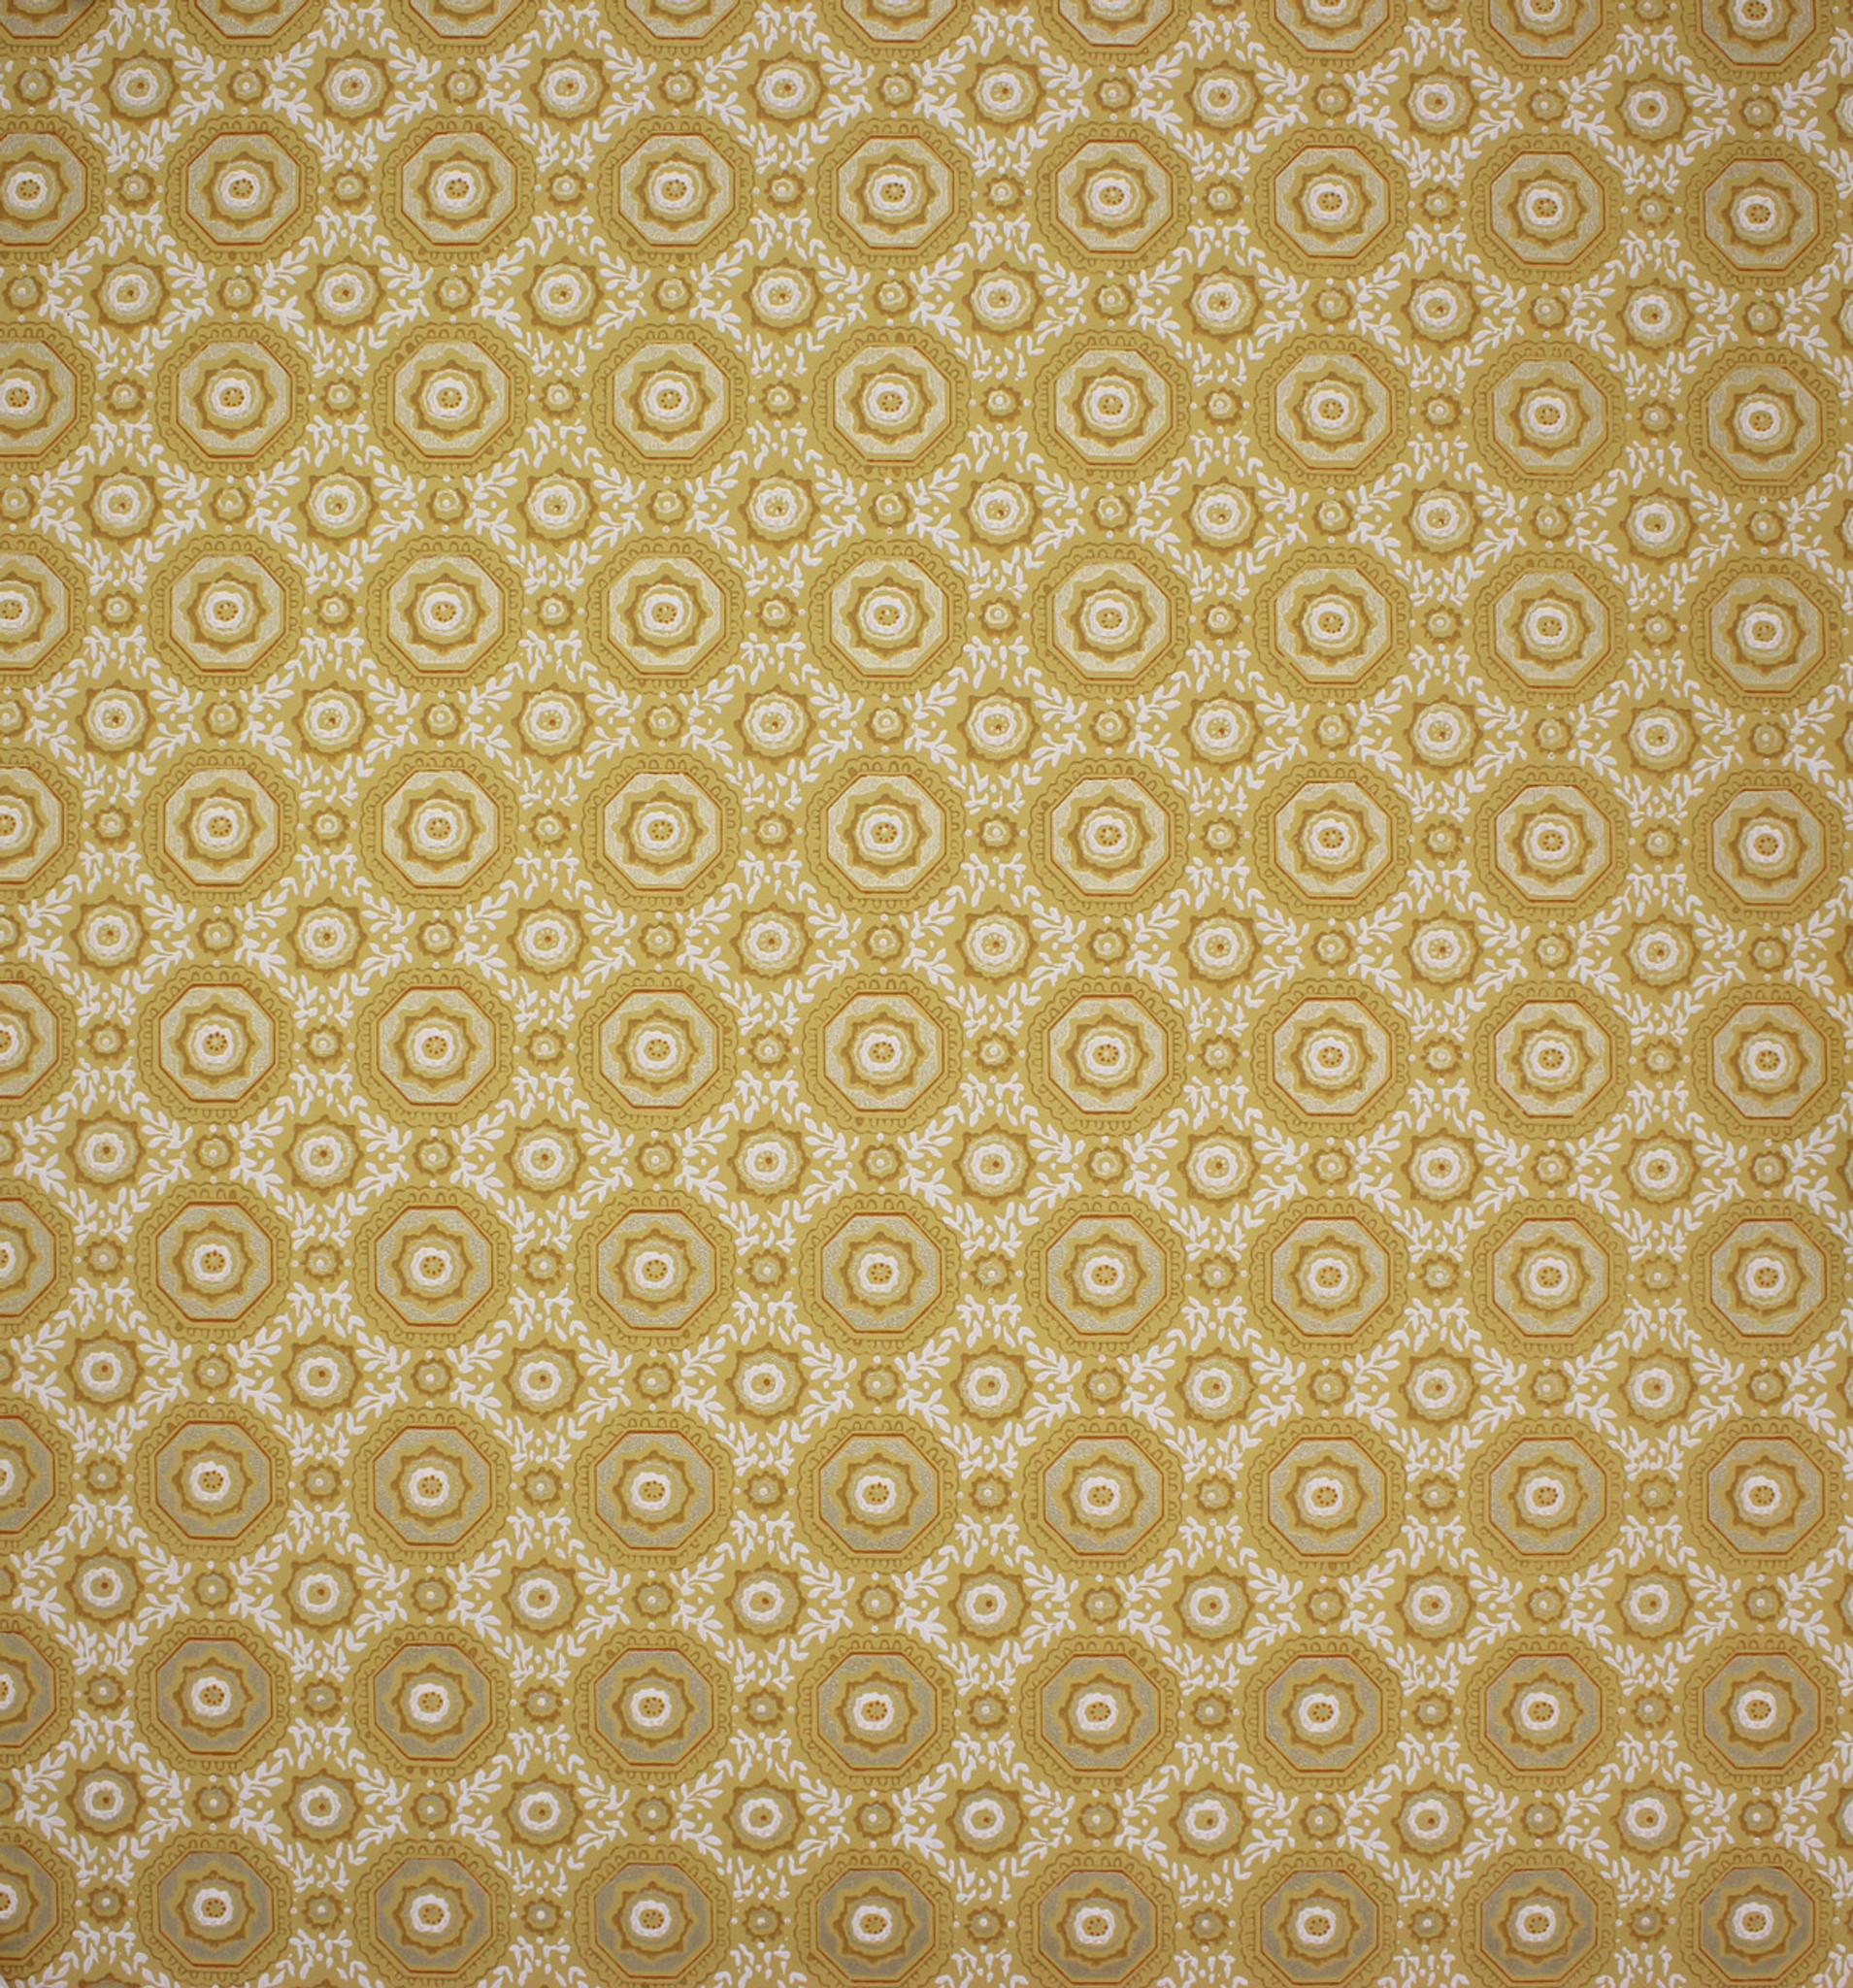 1950s Vintage Wallpaper Gold And White Geometric